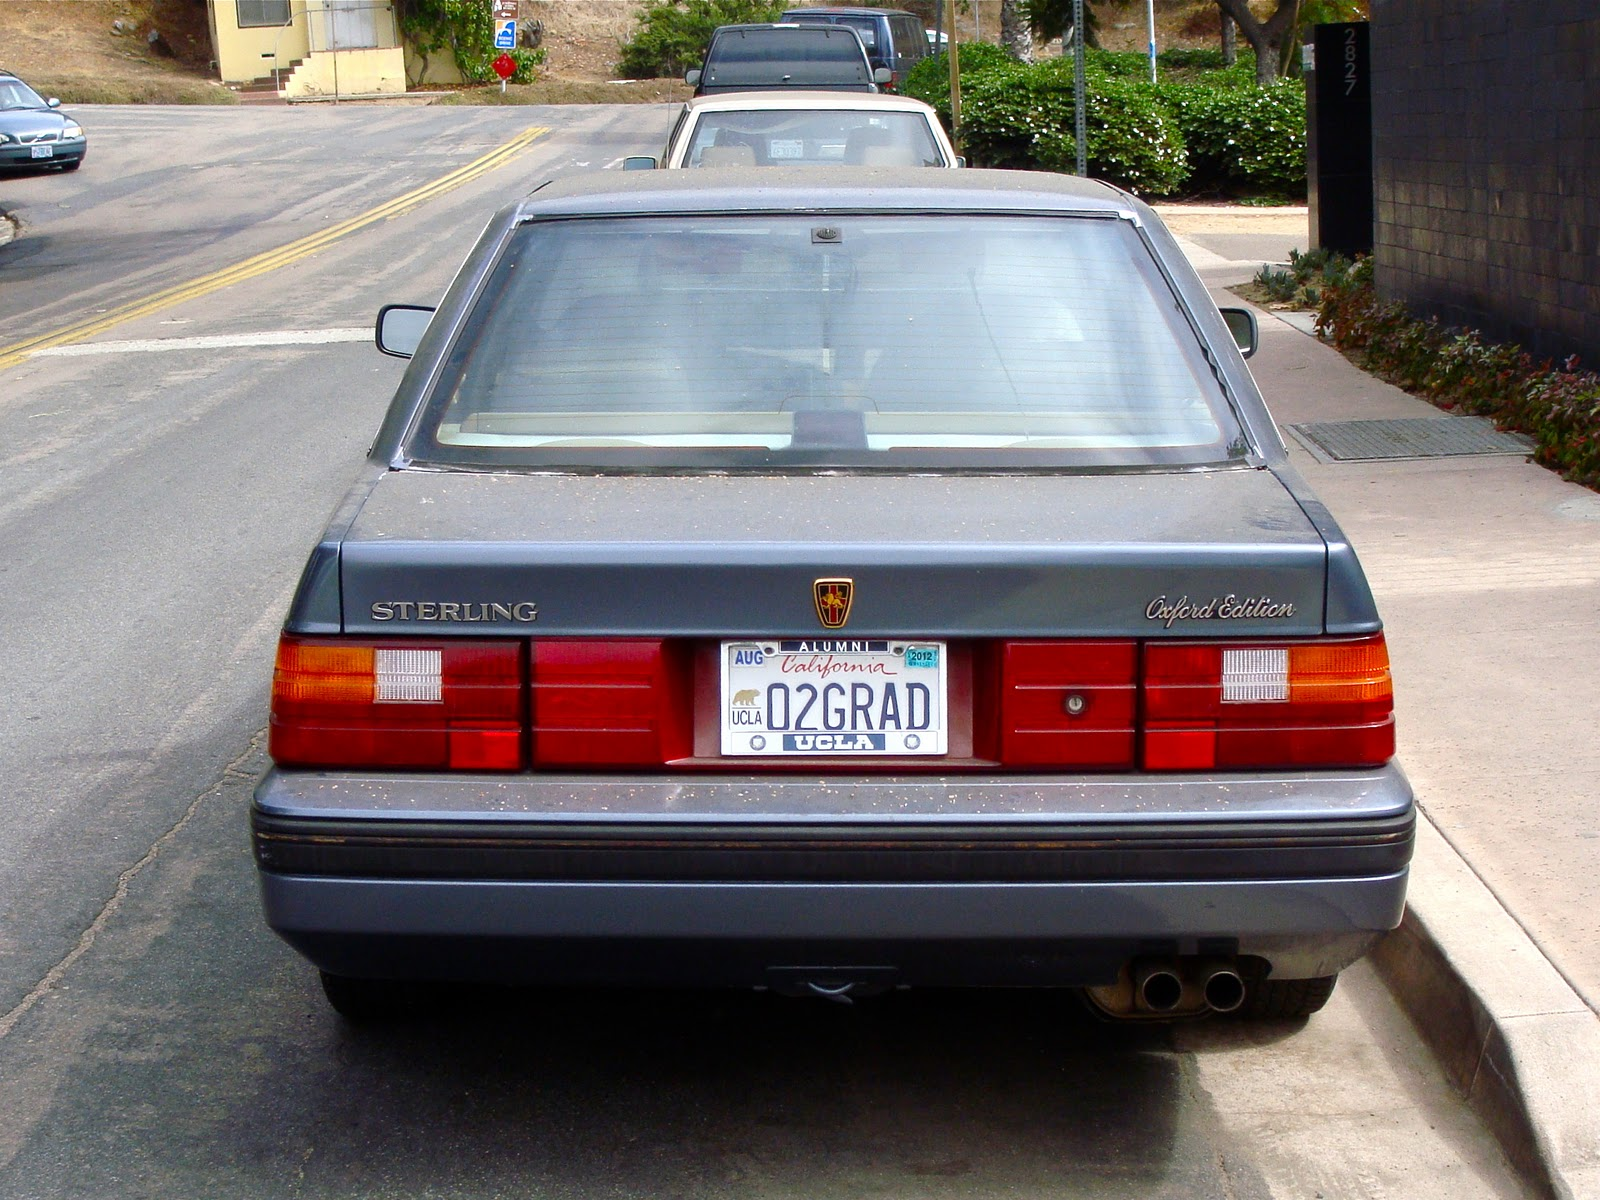 The Street Peep 1990 Sterling 827sl Oxford Edition